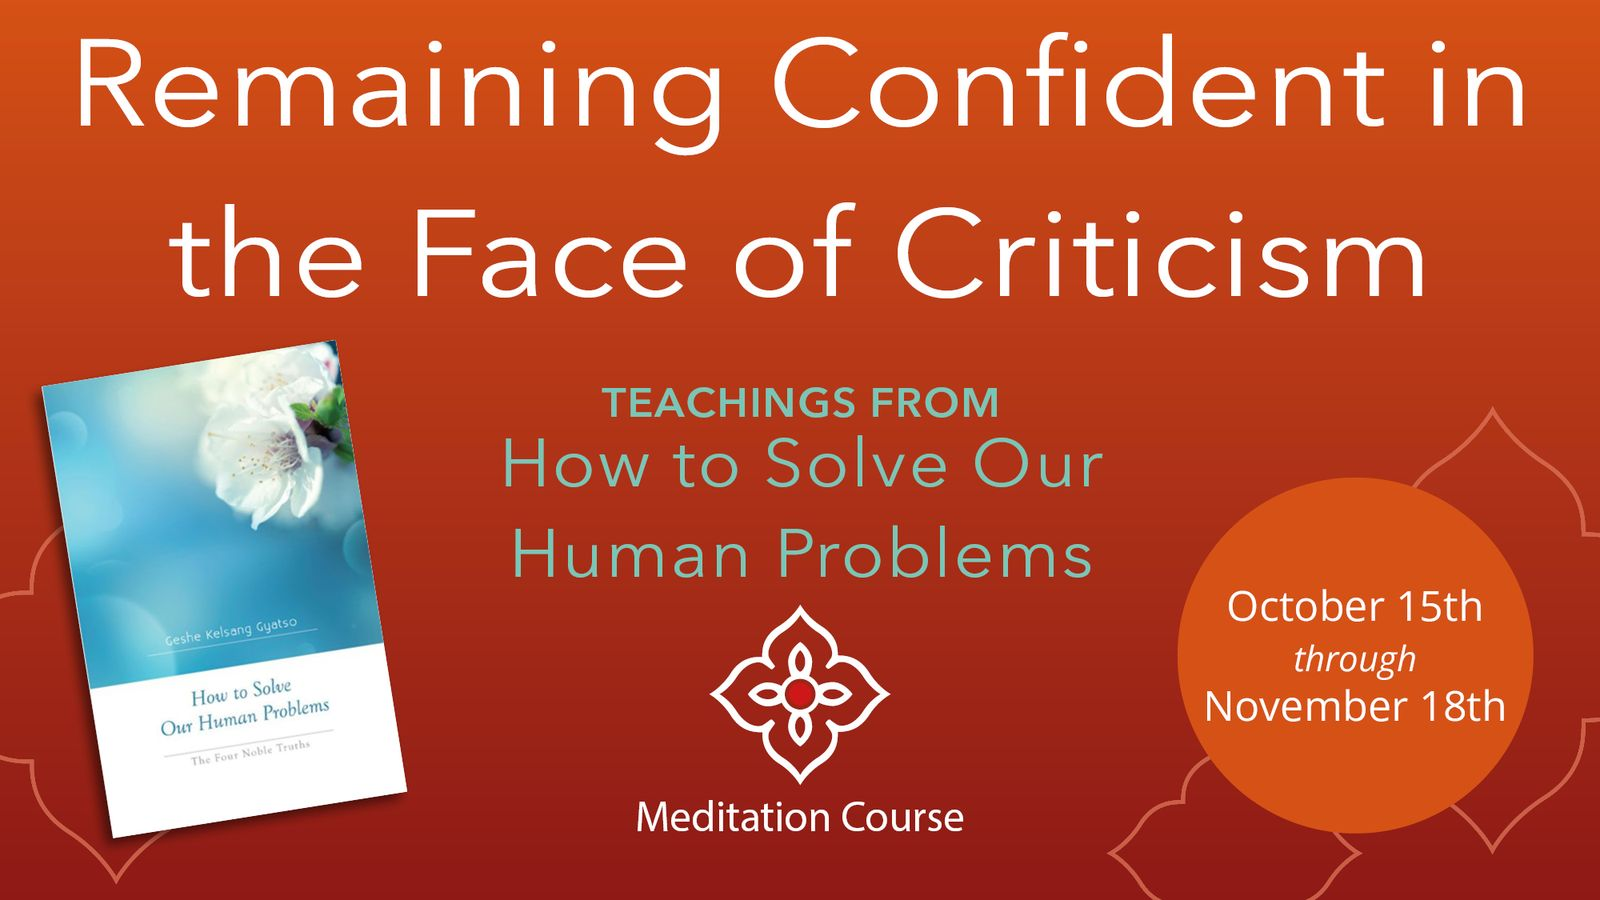 Remaining Confident in the Face of Criticism